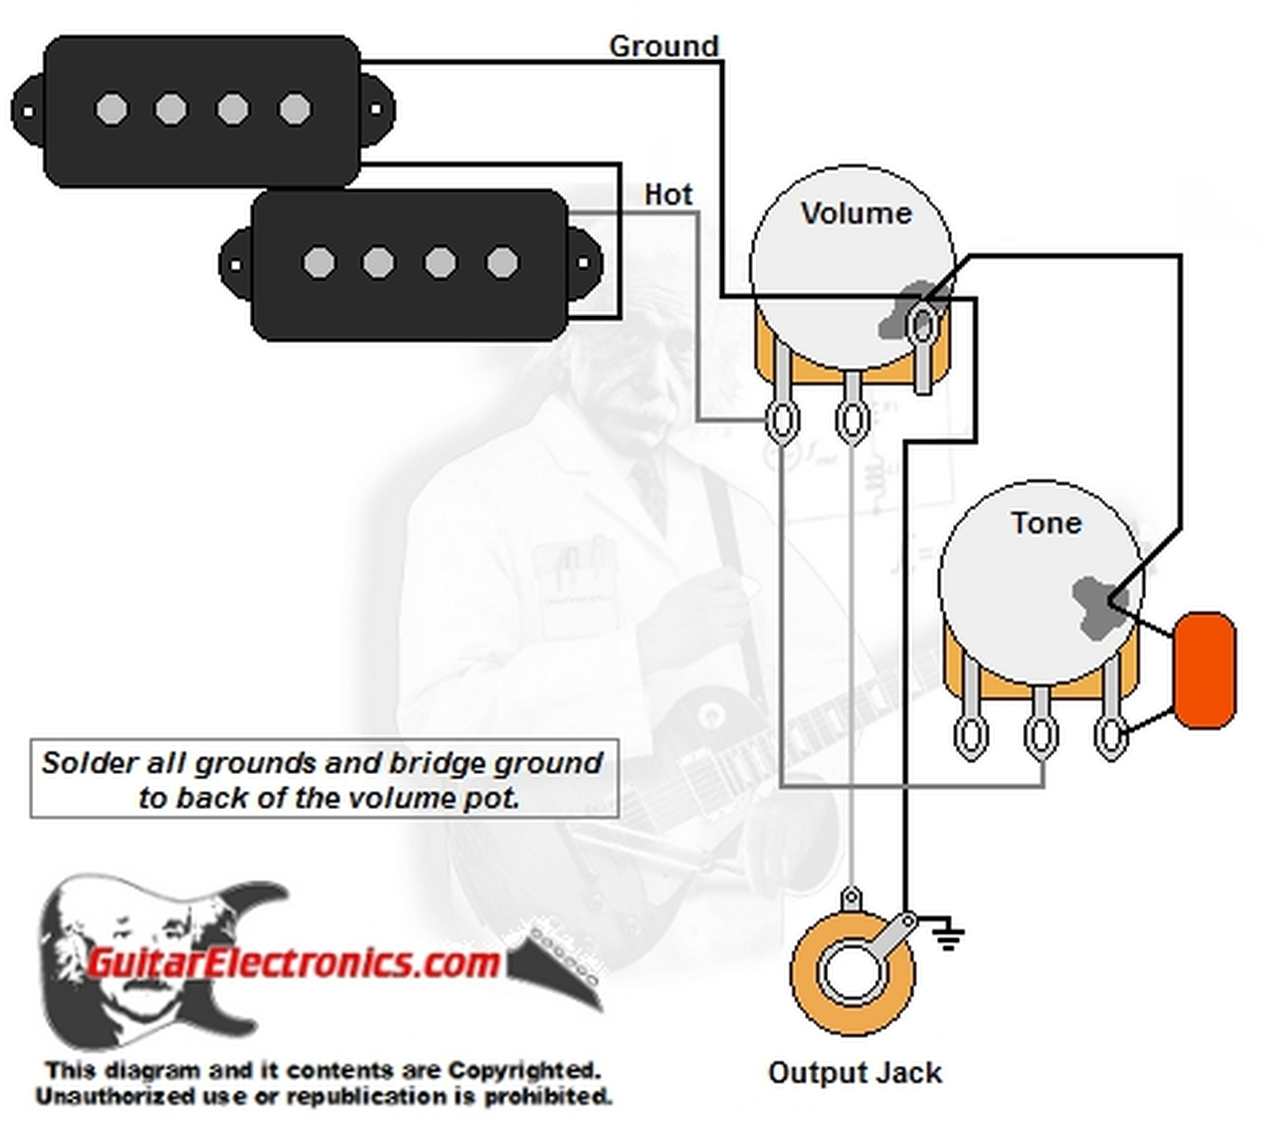 P-Bass Style Wiring Diagram | Guitar Electronics Wiring Diagrams |  | Guitar Electronics